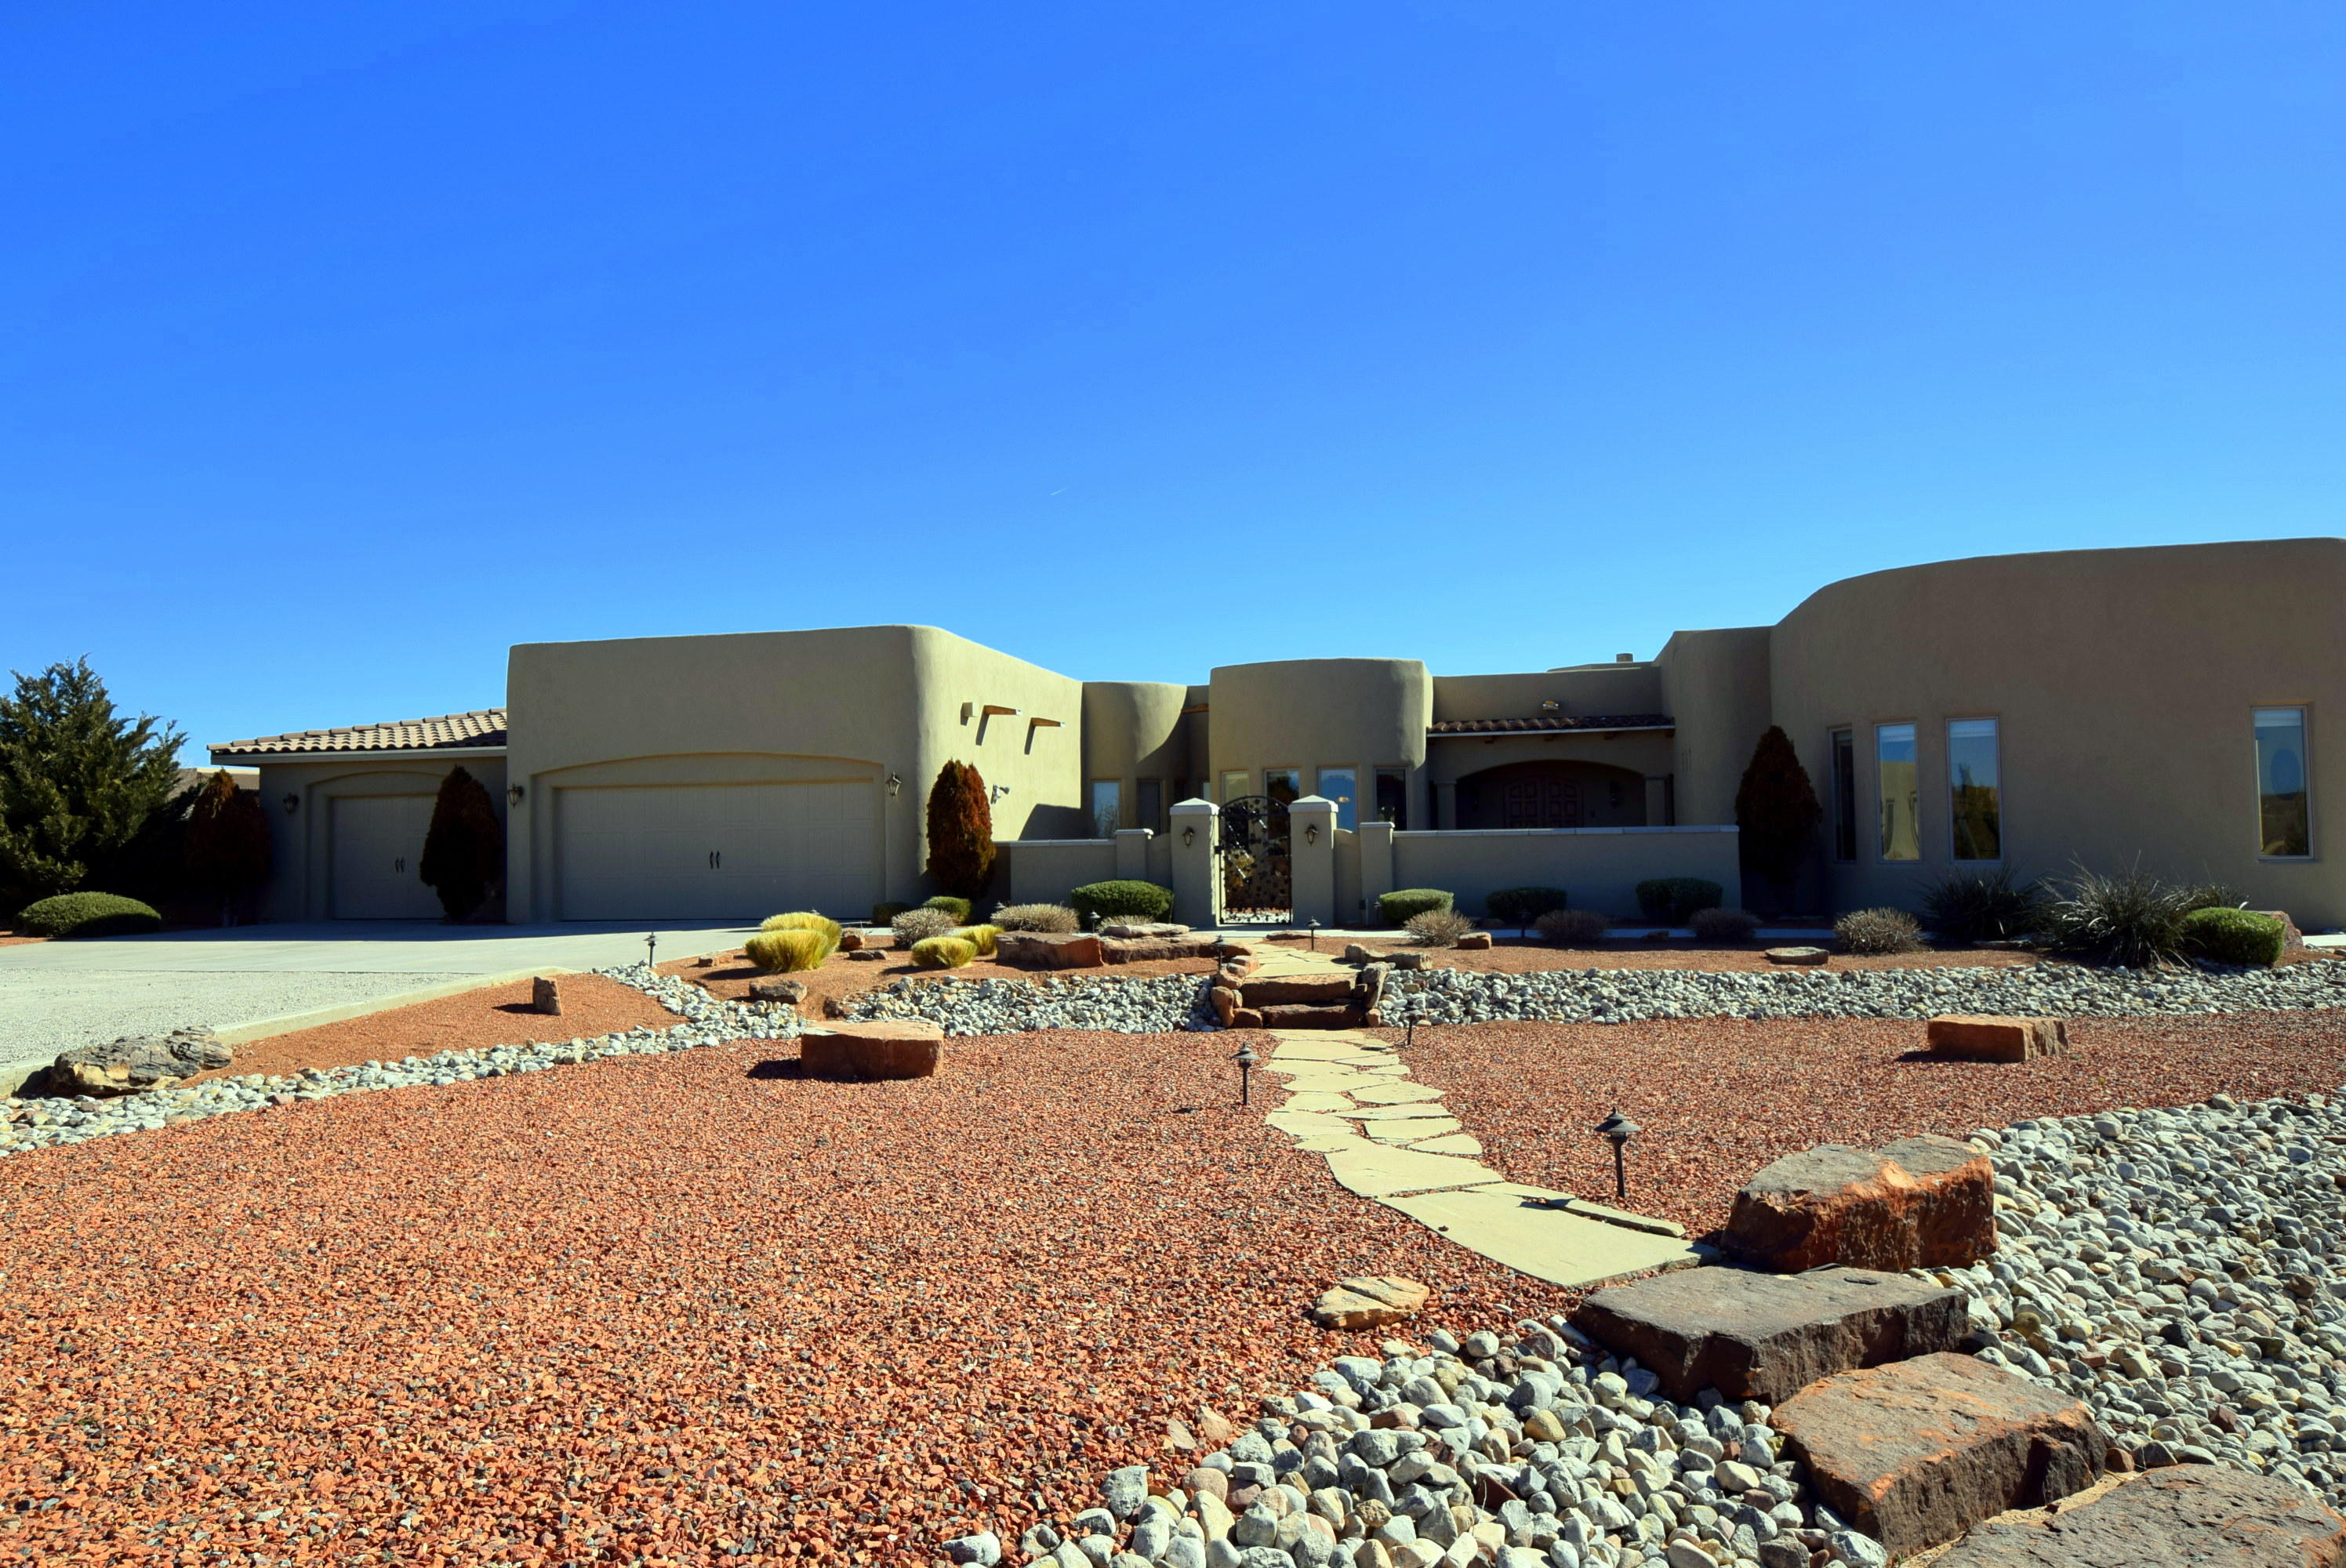 6501 MILPA ALTA ROAD NE, RIO RANCHO, NM 87144